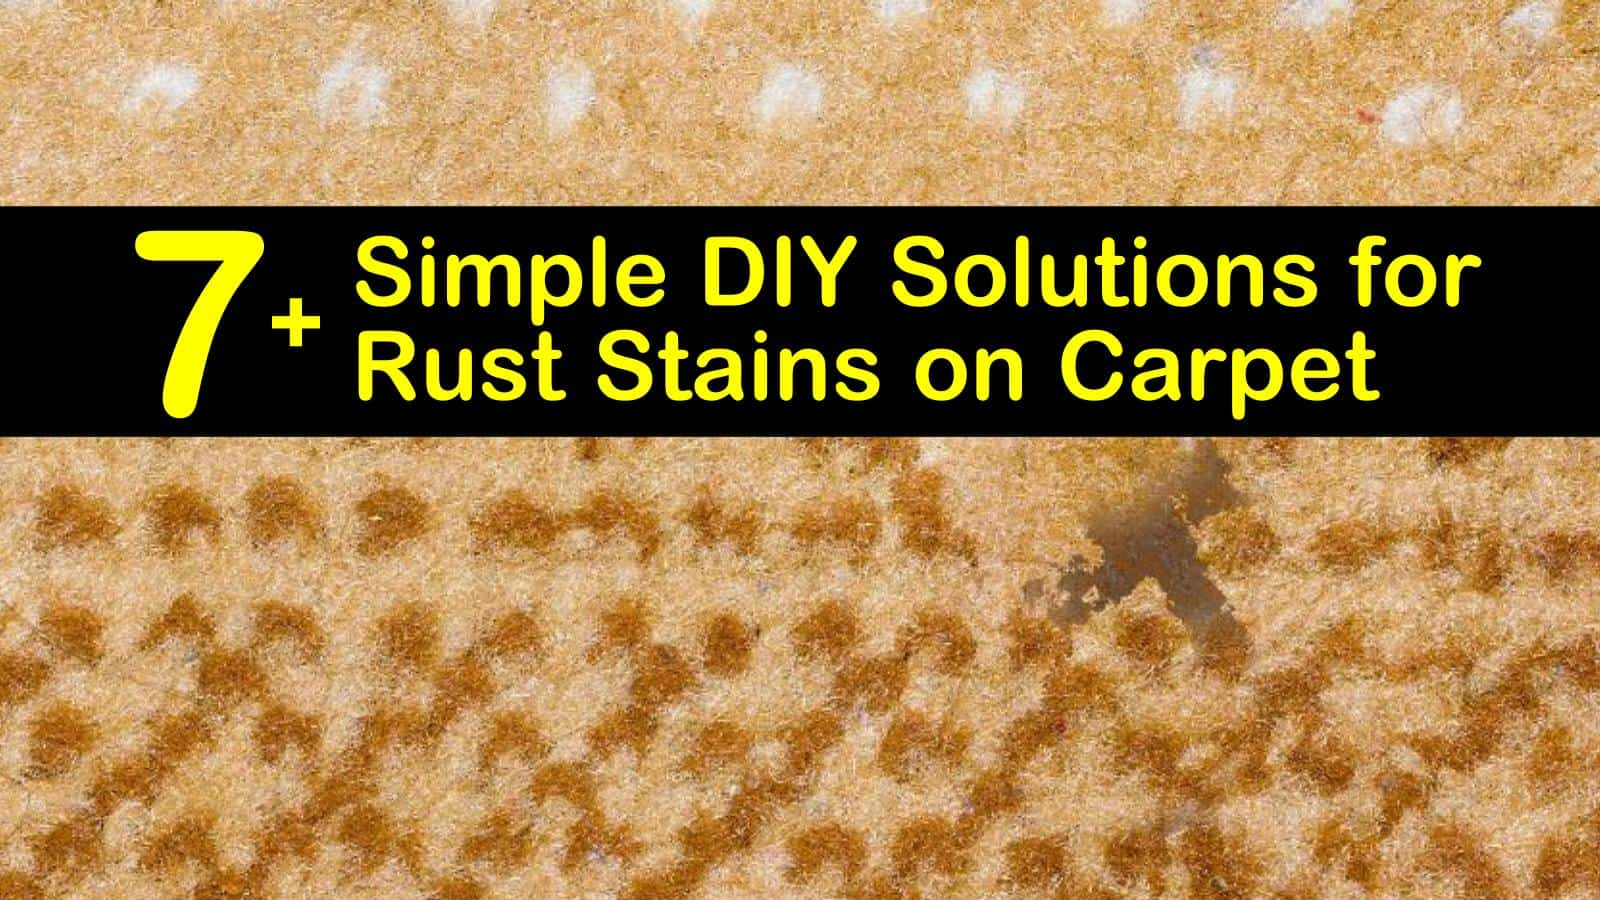 7 Simple Diy Solutions For Rust Stains On Carpet